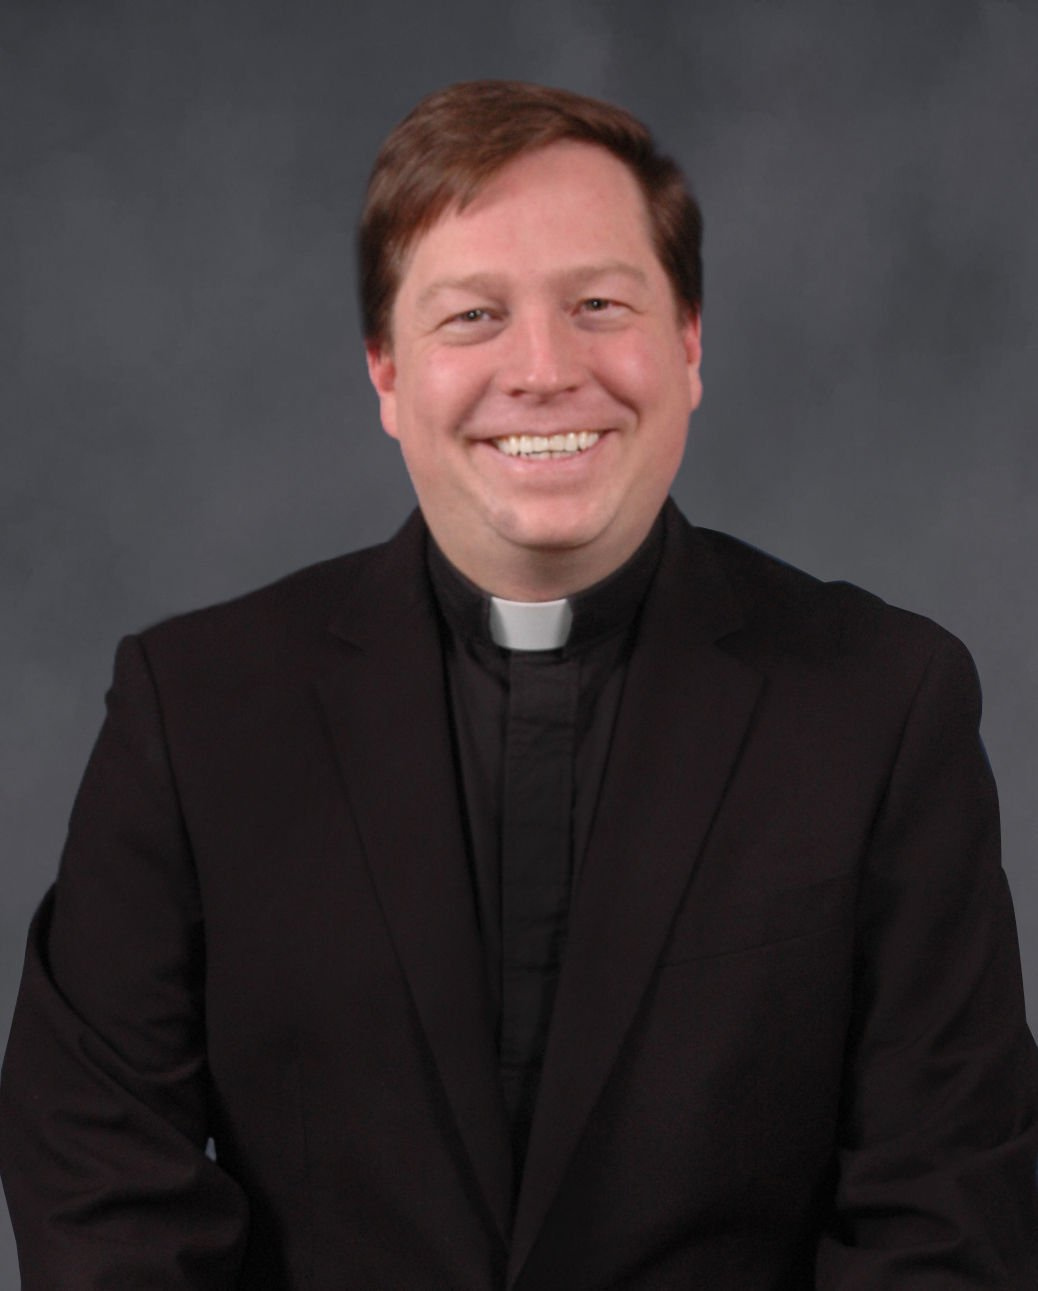 Priest Mark Miller